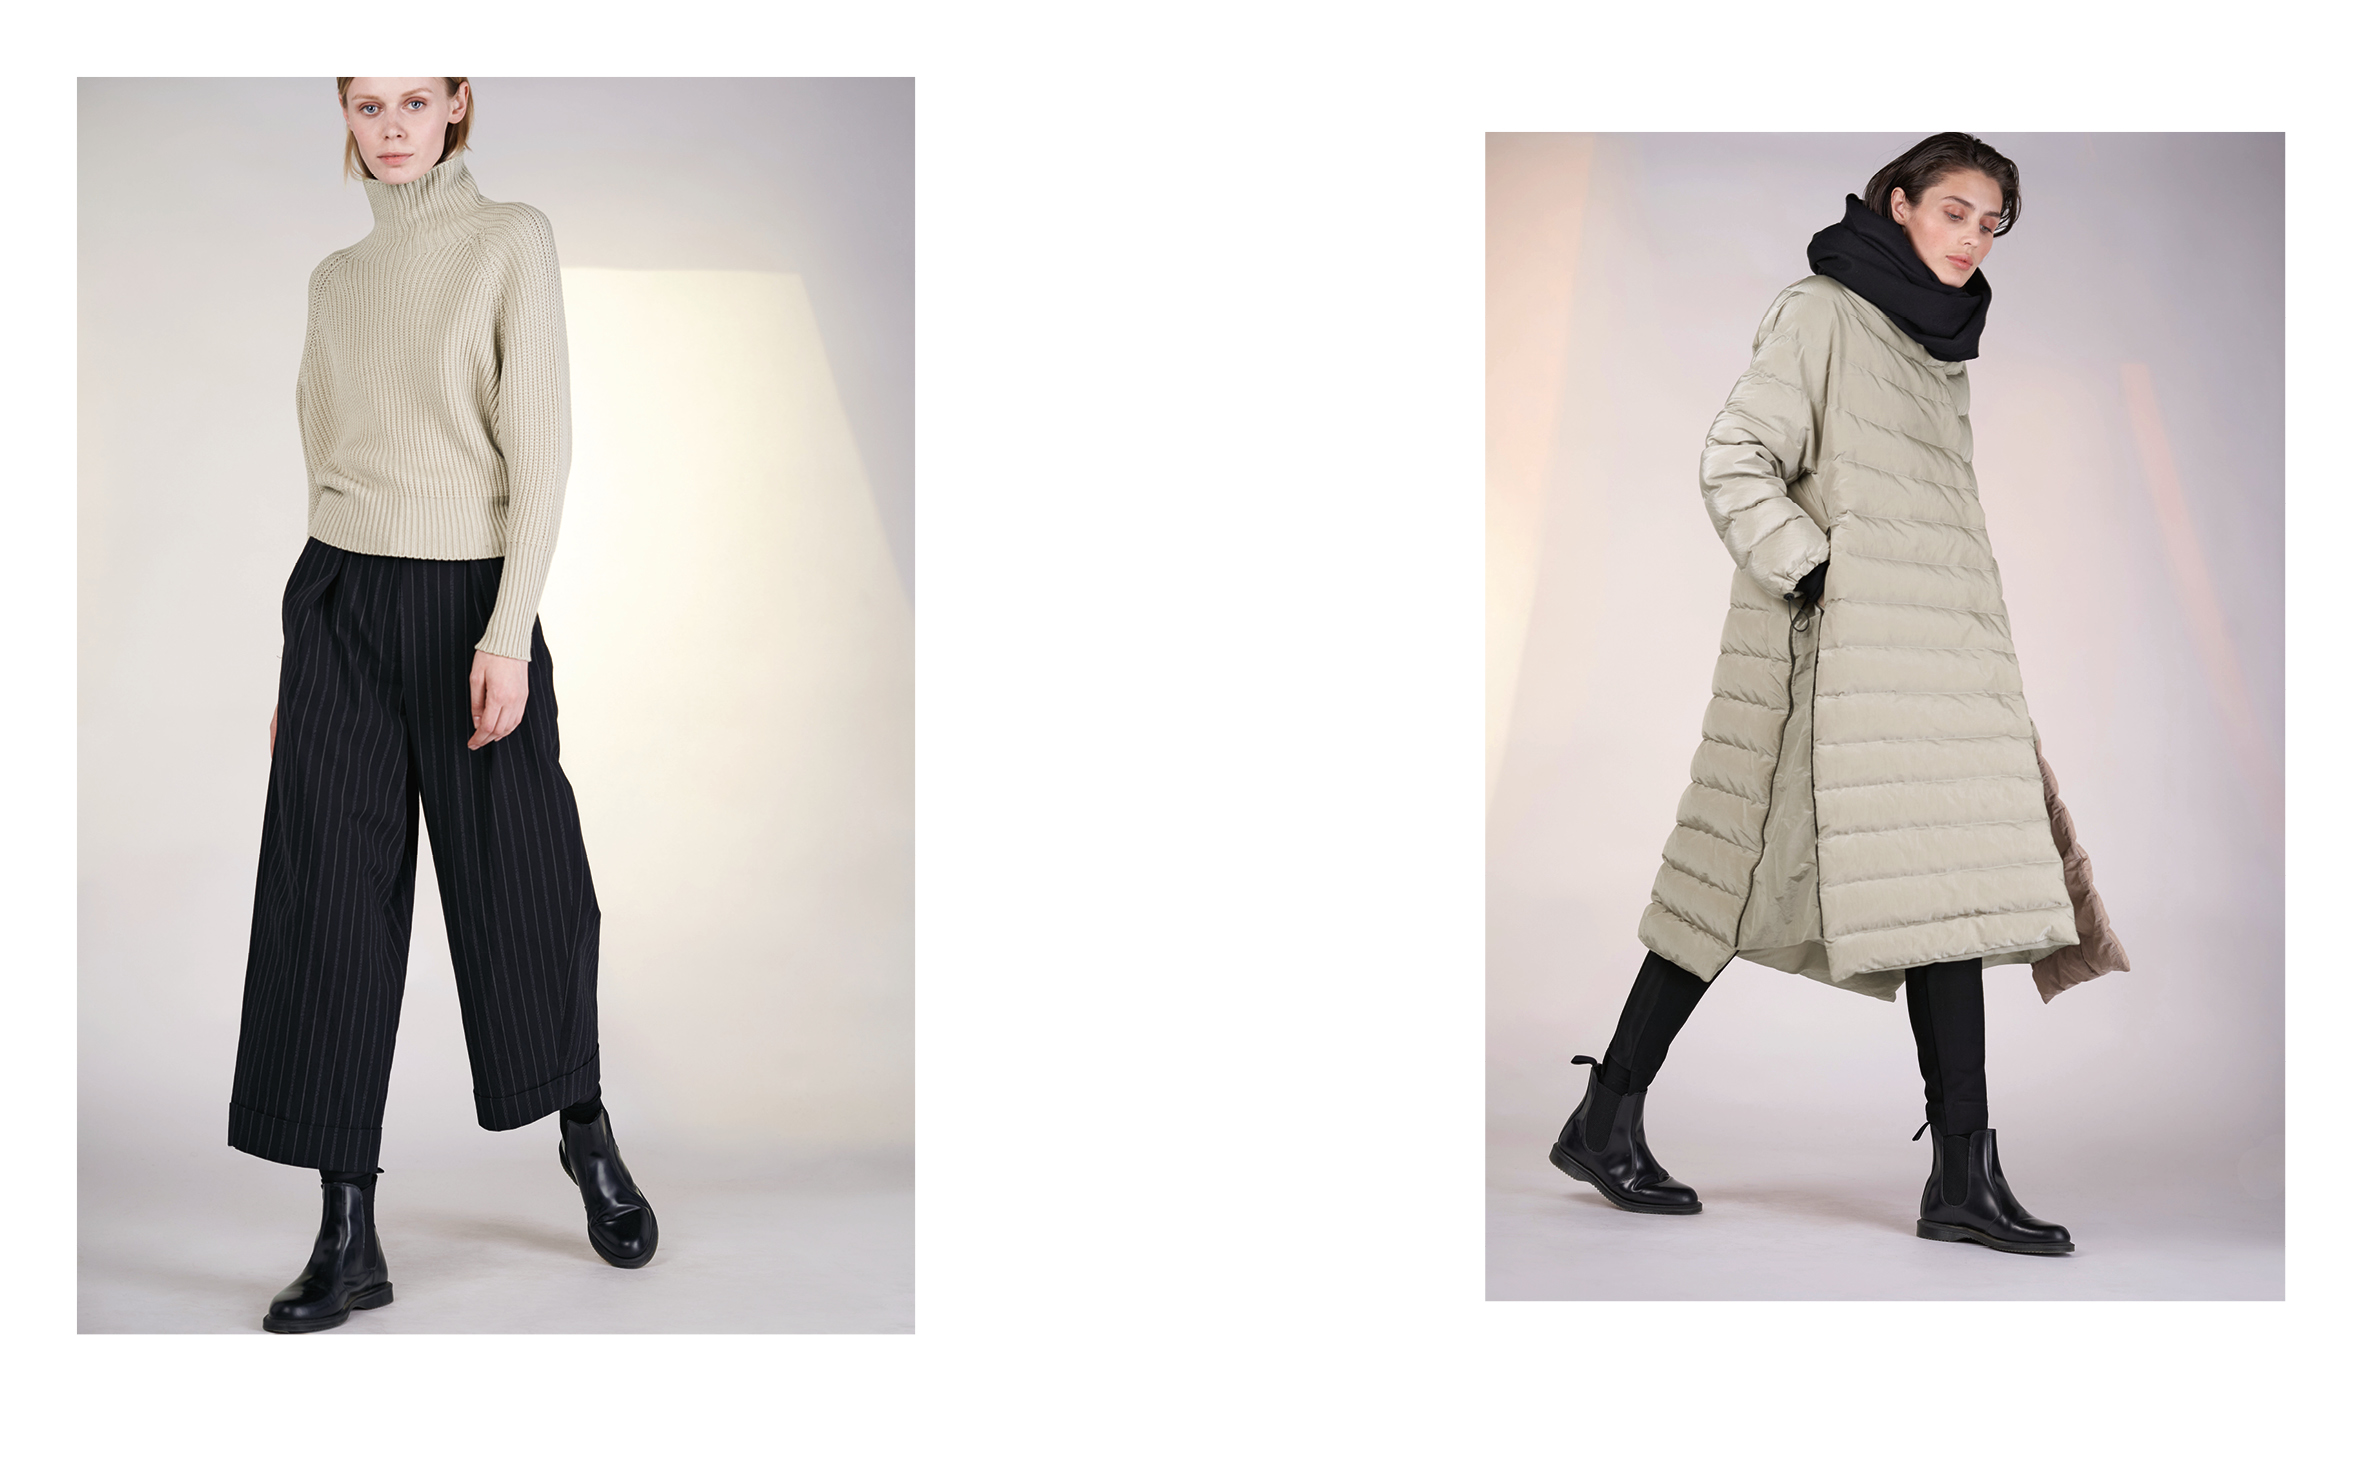 LEFT: jumper SIMON 27503-40 | pants UTZ 27133-48  RIGHT: coat GOFI 27121-40 | pants PI 27118-08 | scarf POKER 27401-08